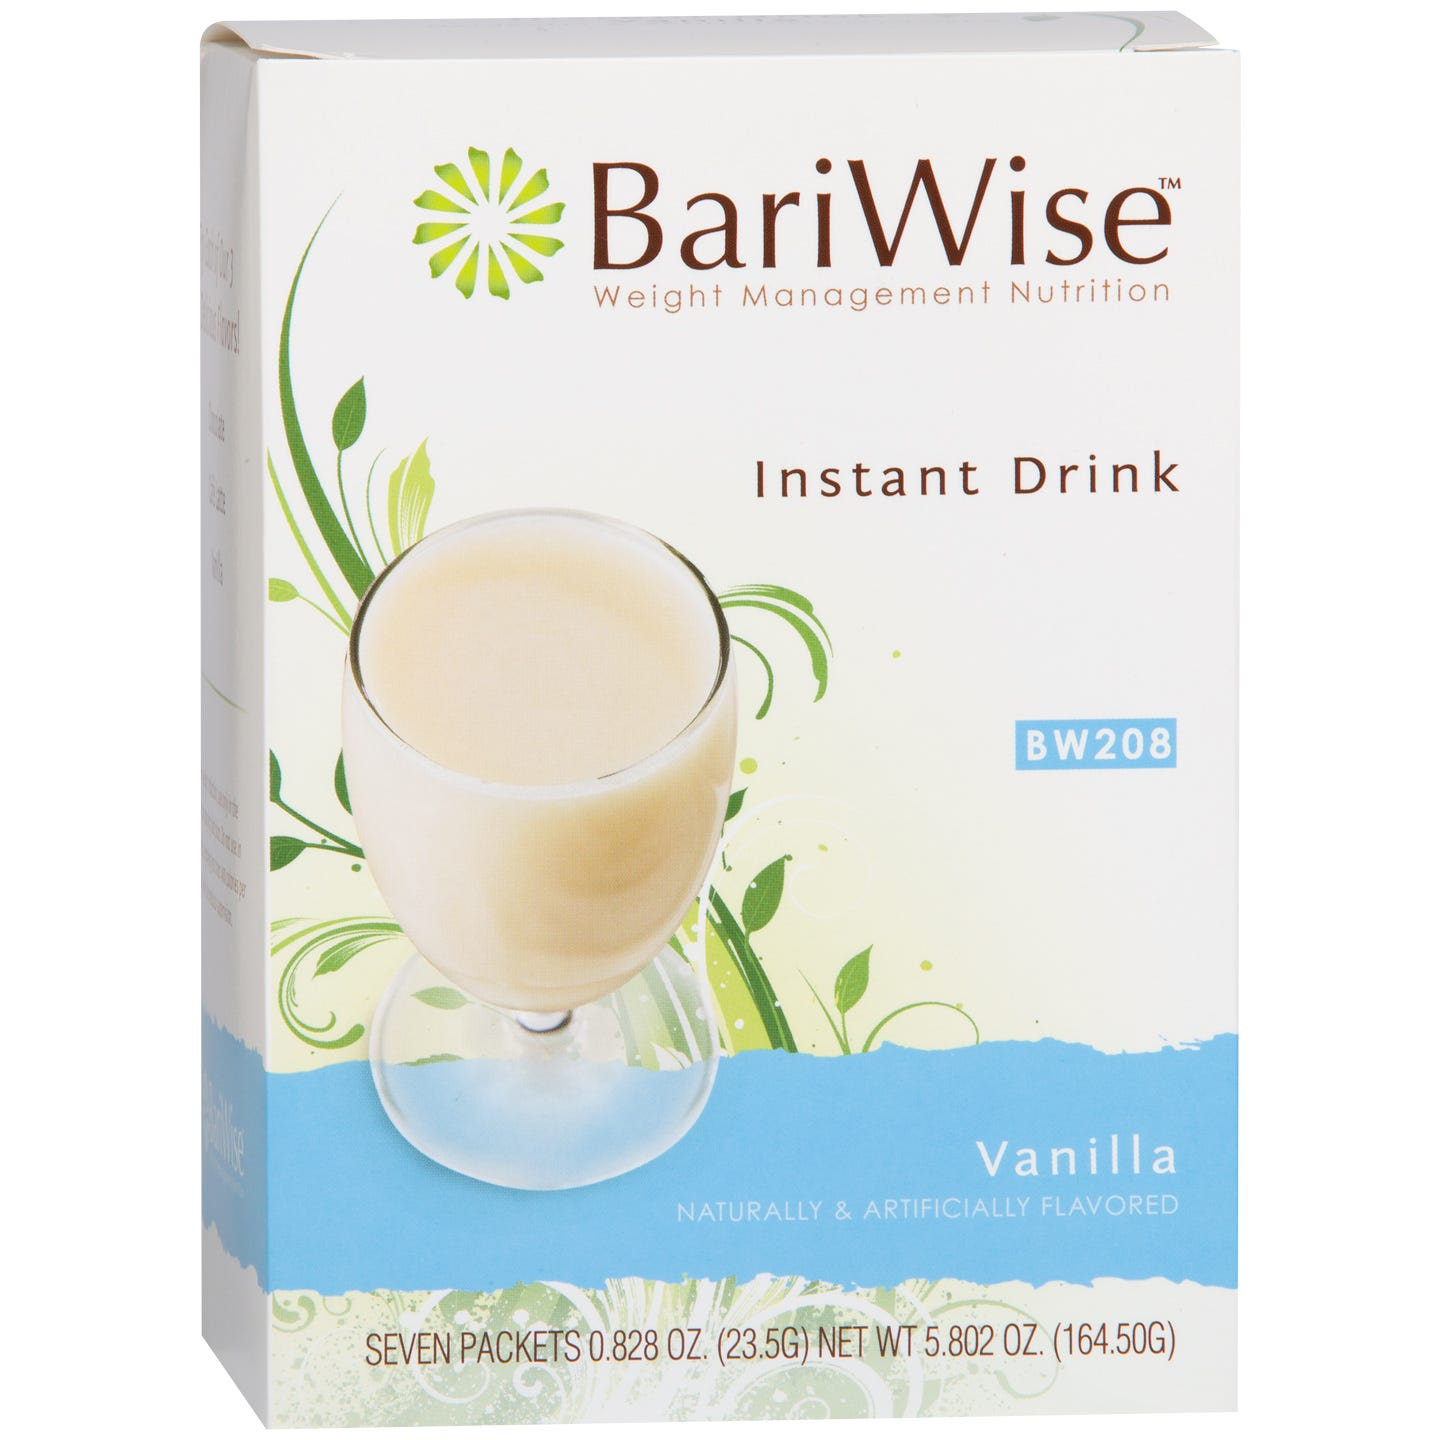 BariWise Instant Protein Drink (7 ct) - Vanilla - Rapid Diet Weight Loss Products Shop